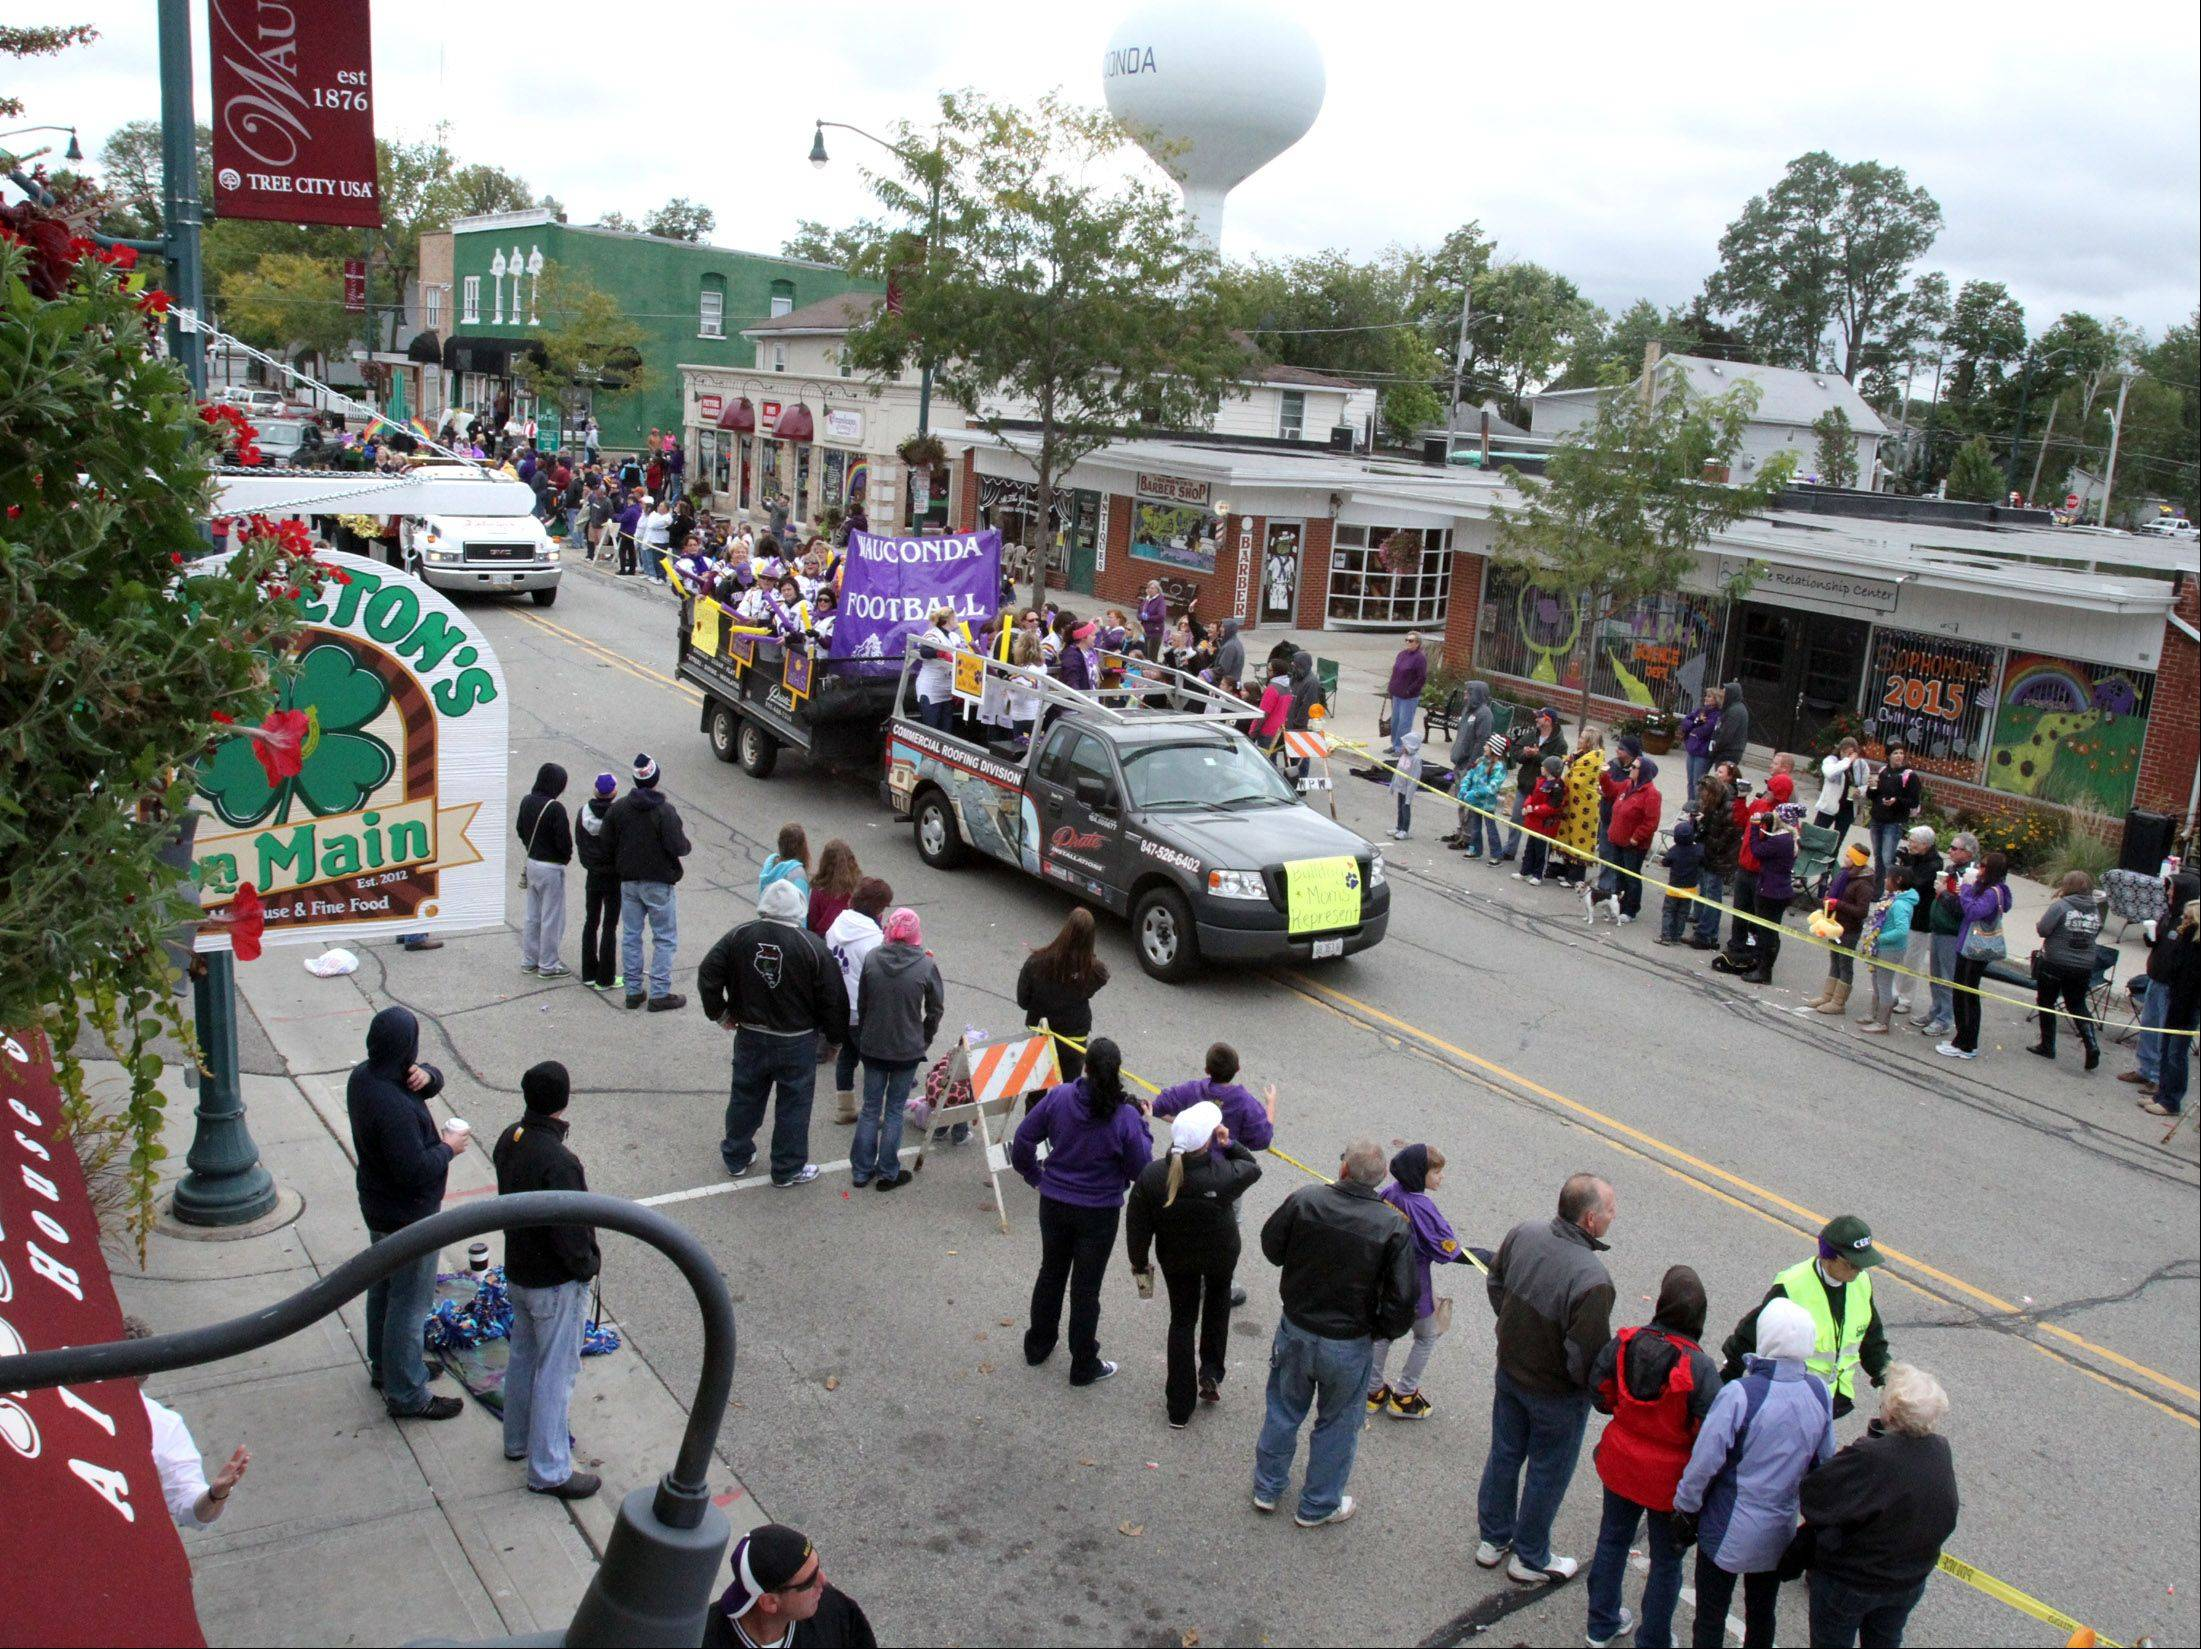 Wauconda High School's homecoming parade travelled through downtown Wauconda.